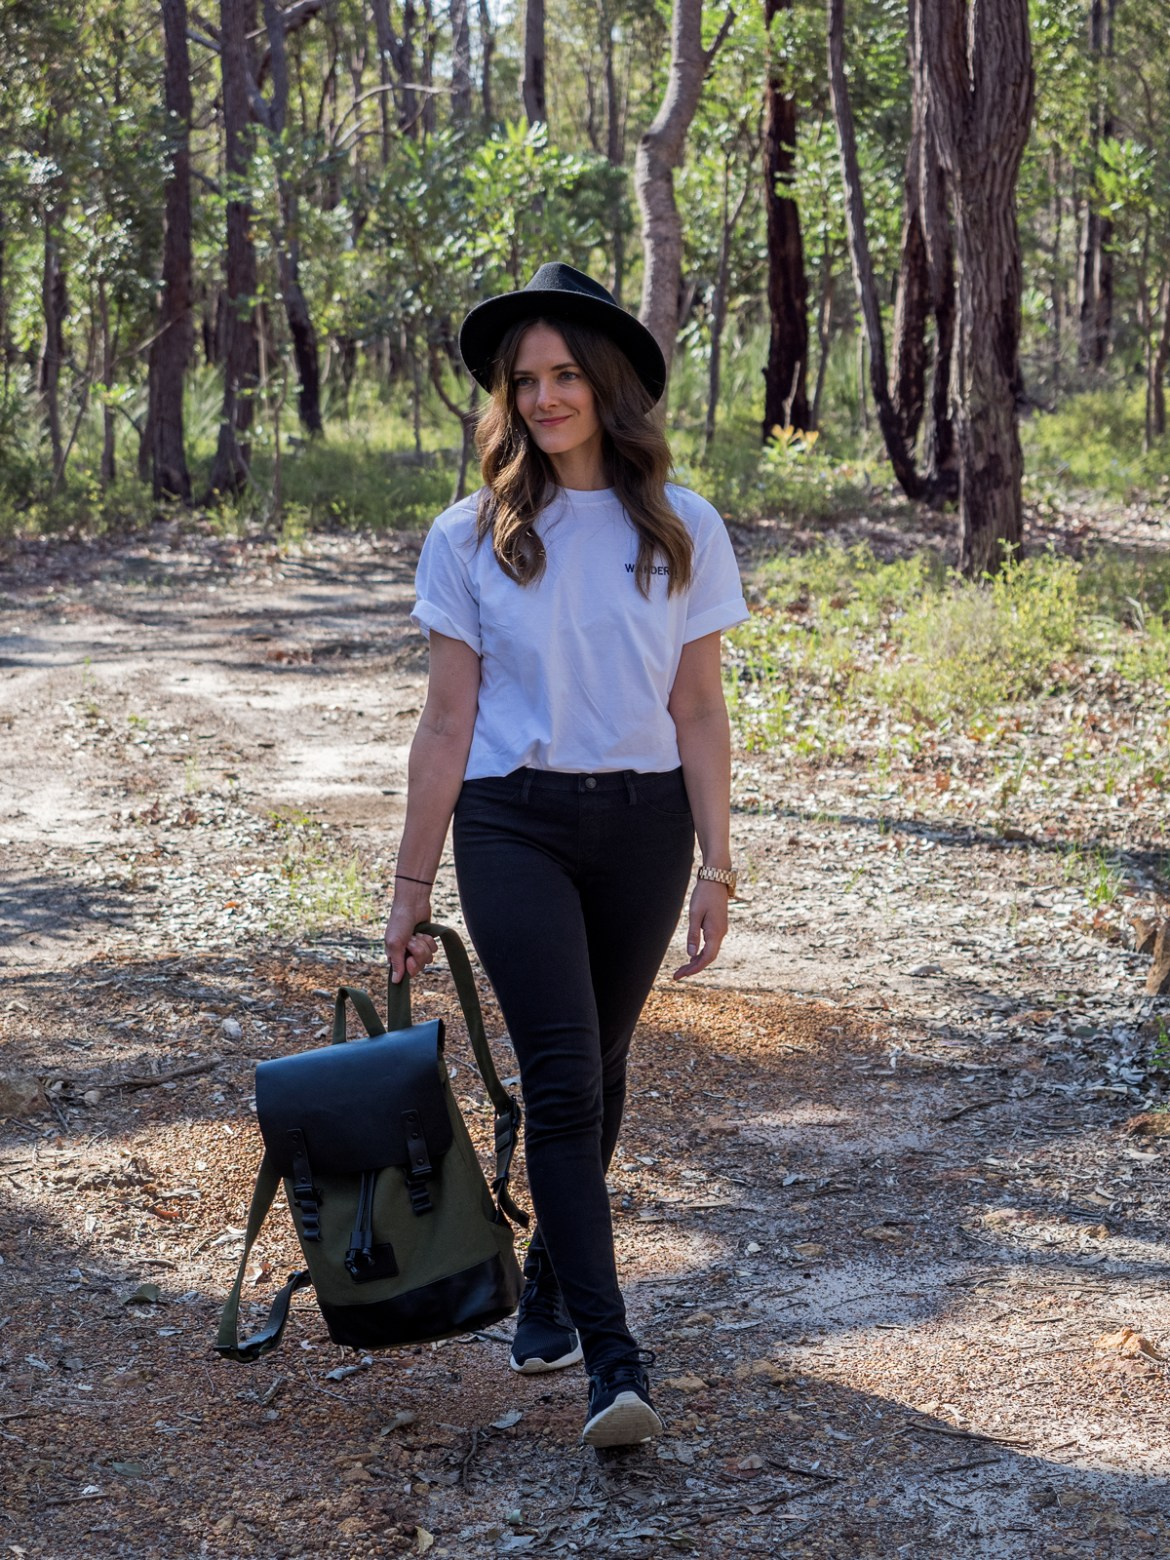 Gaston Luga Praper olive and black backpack worn by Inspiring Wit travel and fashion blogger with Will and Bear hat